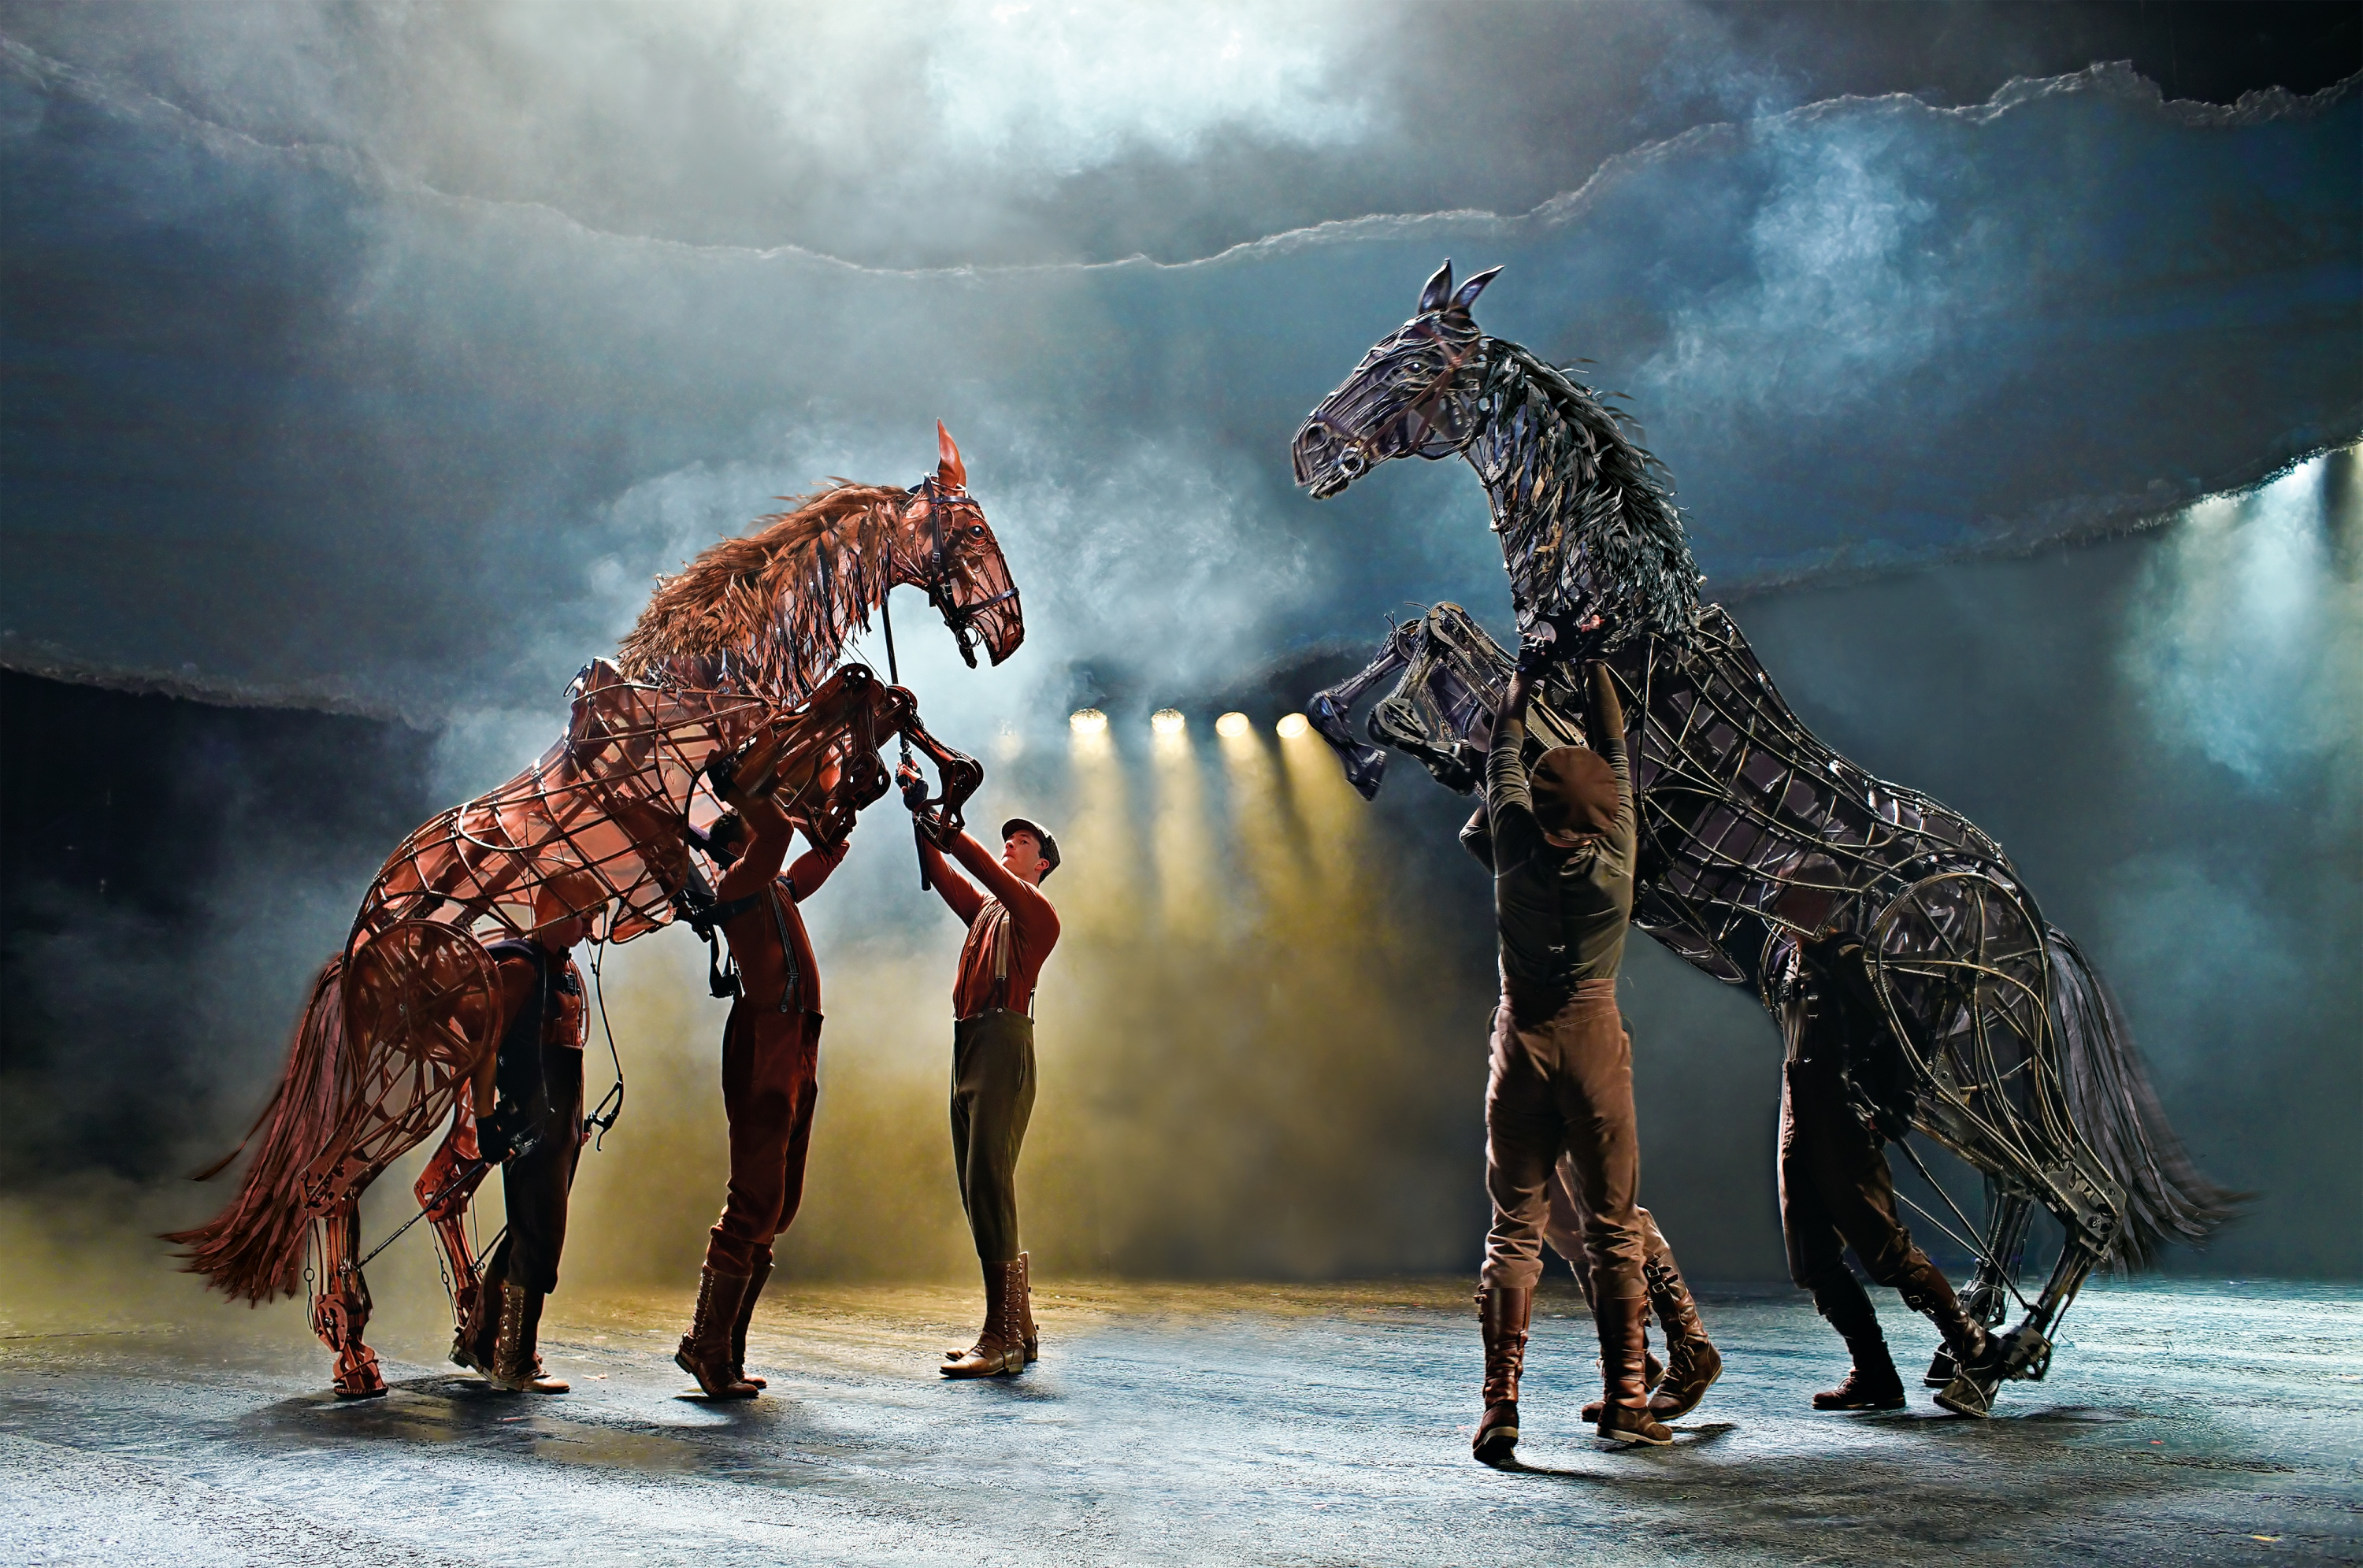 war-horse-at-the-new-london-theatre_-photo-by-brinkhoff-migenburg-852-000_copie_5de13bc7c1dbe.jpg